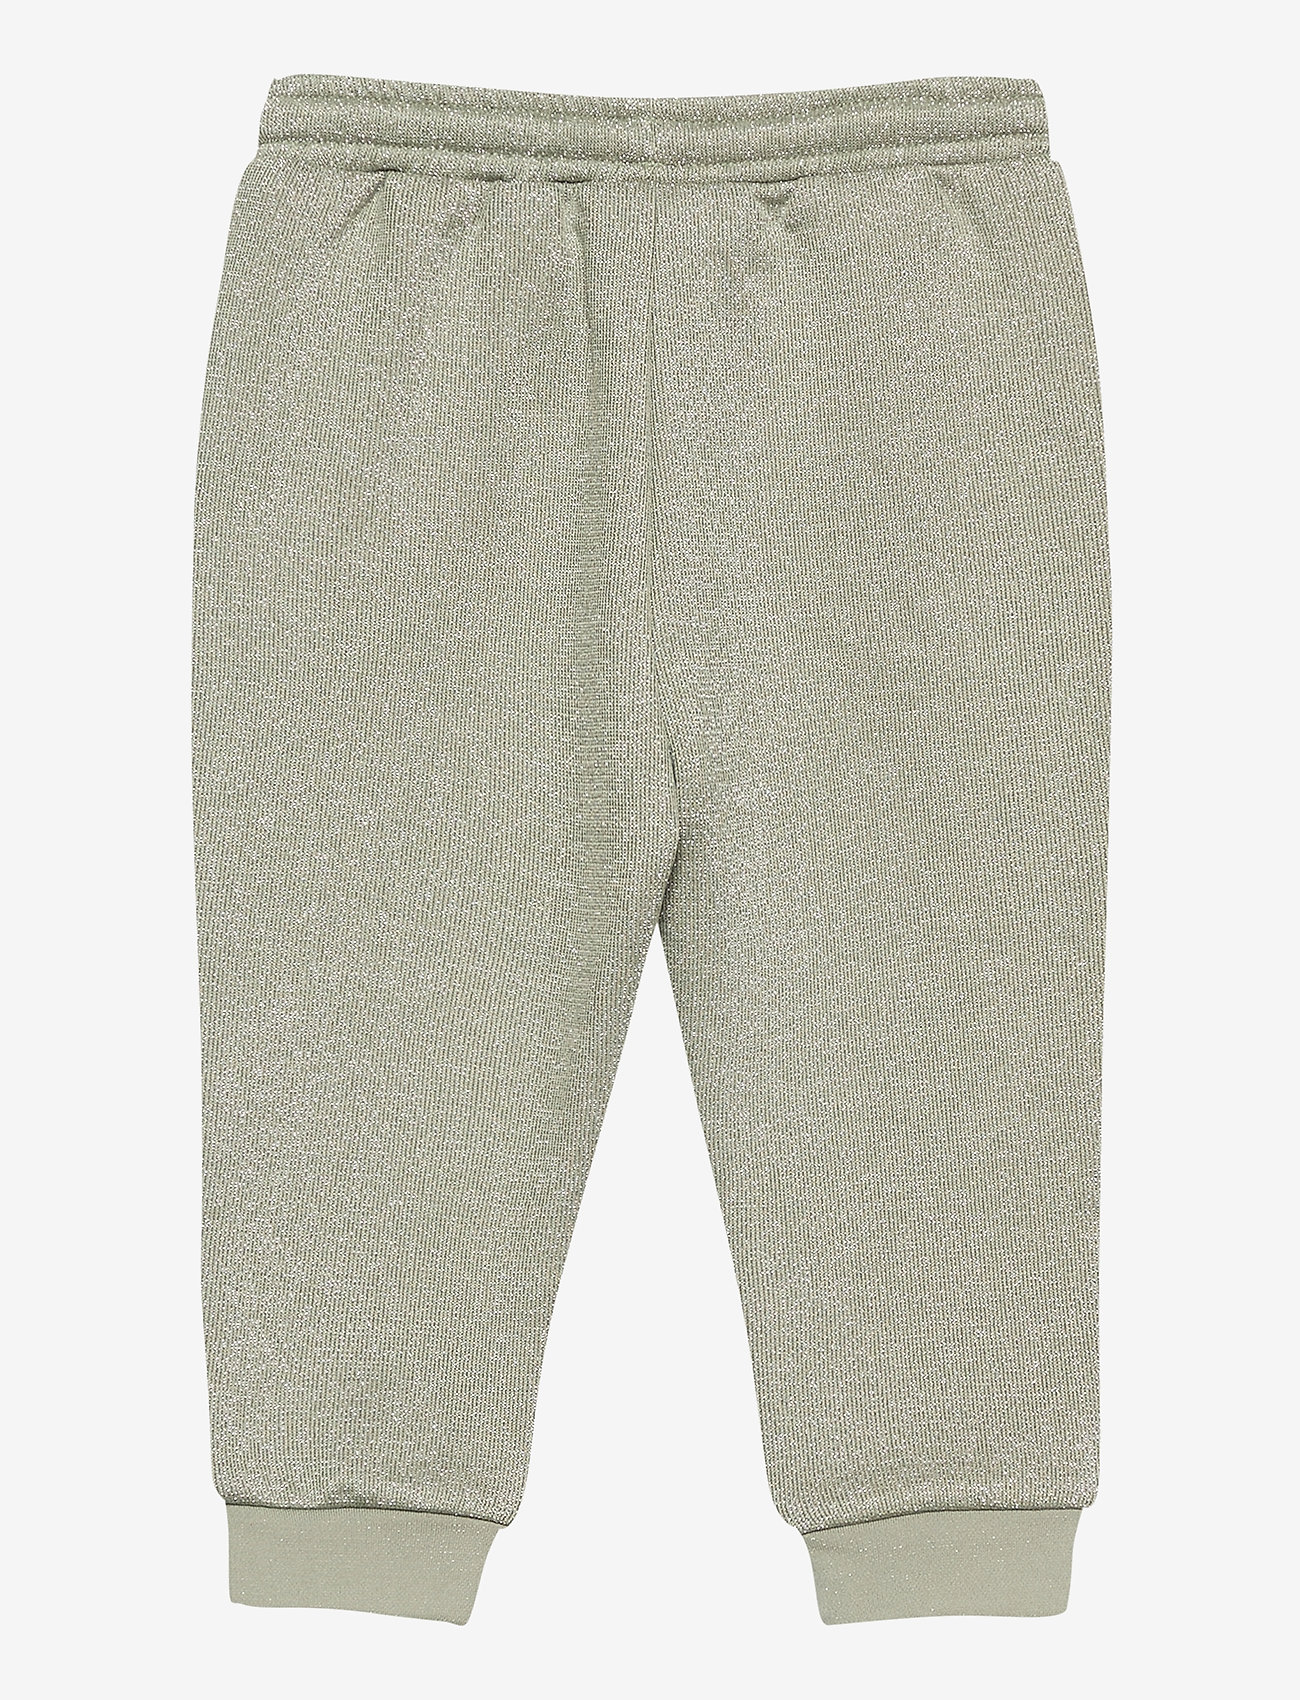 Petit by Sofie Schnoor - Pants - sweatpants - green - 1